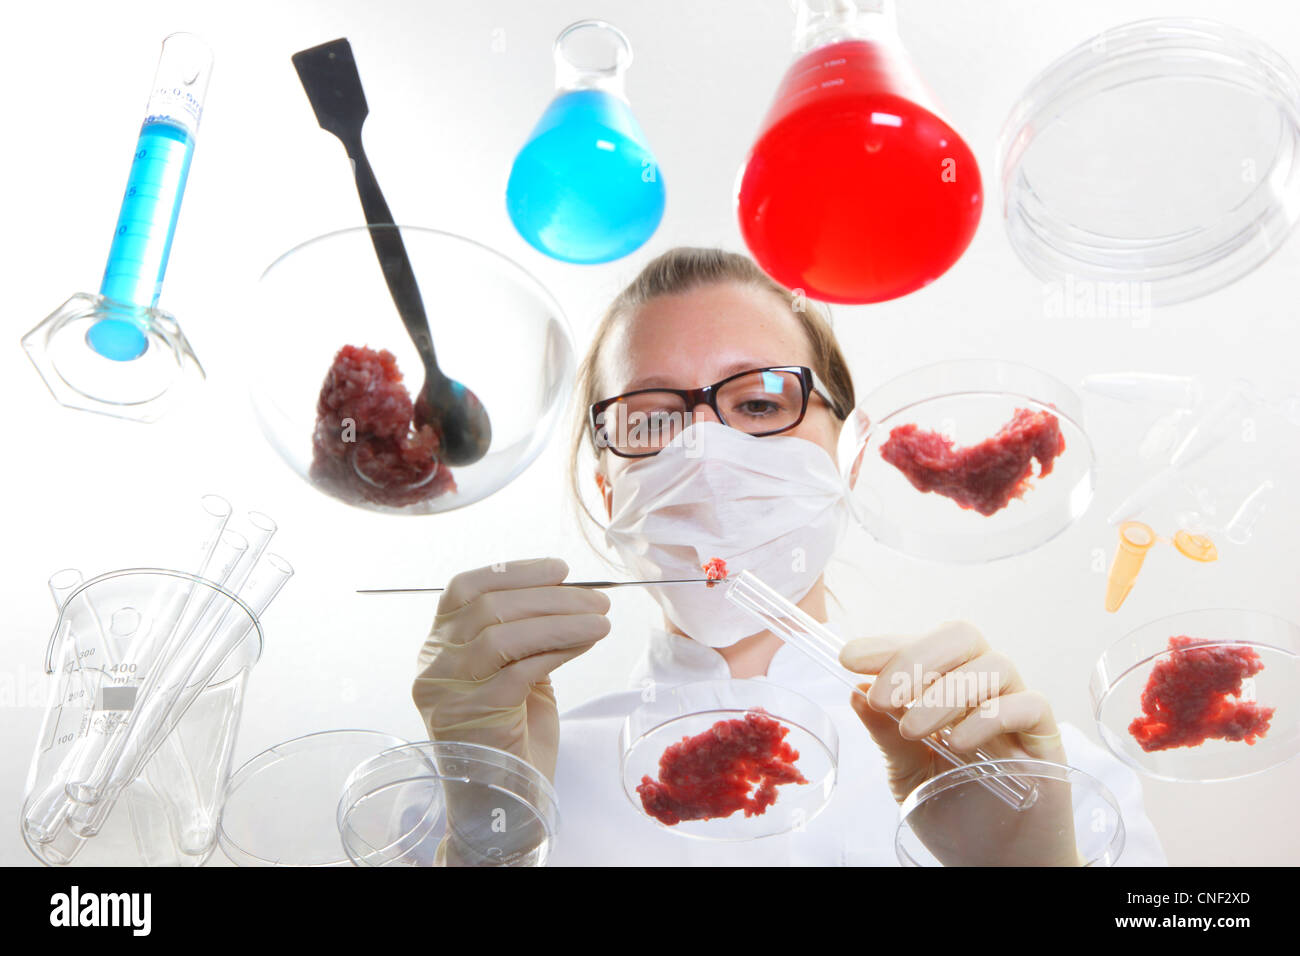 Symbolic image, food investigation. Laboratory technician examines various foods such as meat, sprouts, hen eggs. - Stock Image